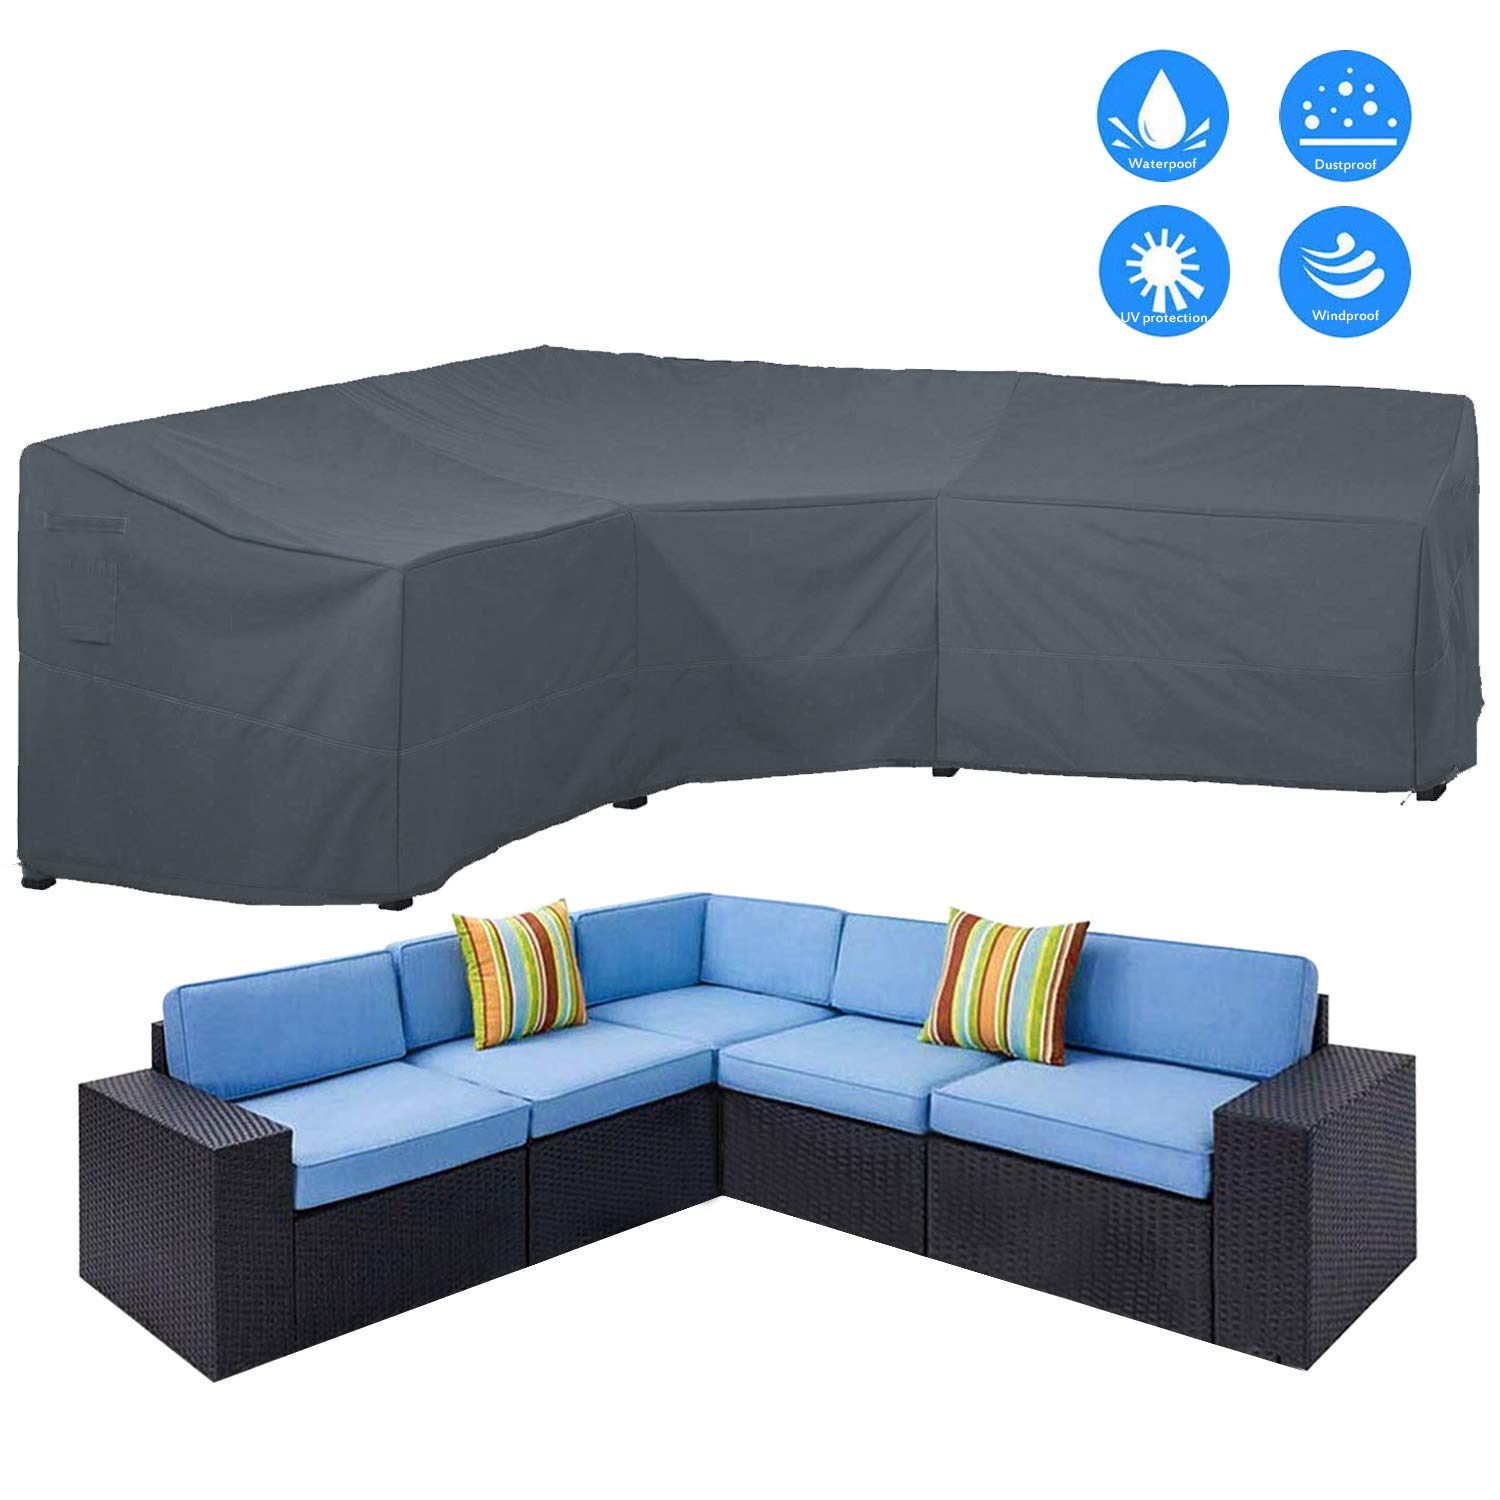 AKEfit Patio Furniture Cover Outdoor V-Shaped Sectional Sofa Cover Premium Waterproof Fabric Garden Couch Protector Grey 100'' L x 33.5'' D x 31'' H by AKEfit